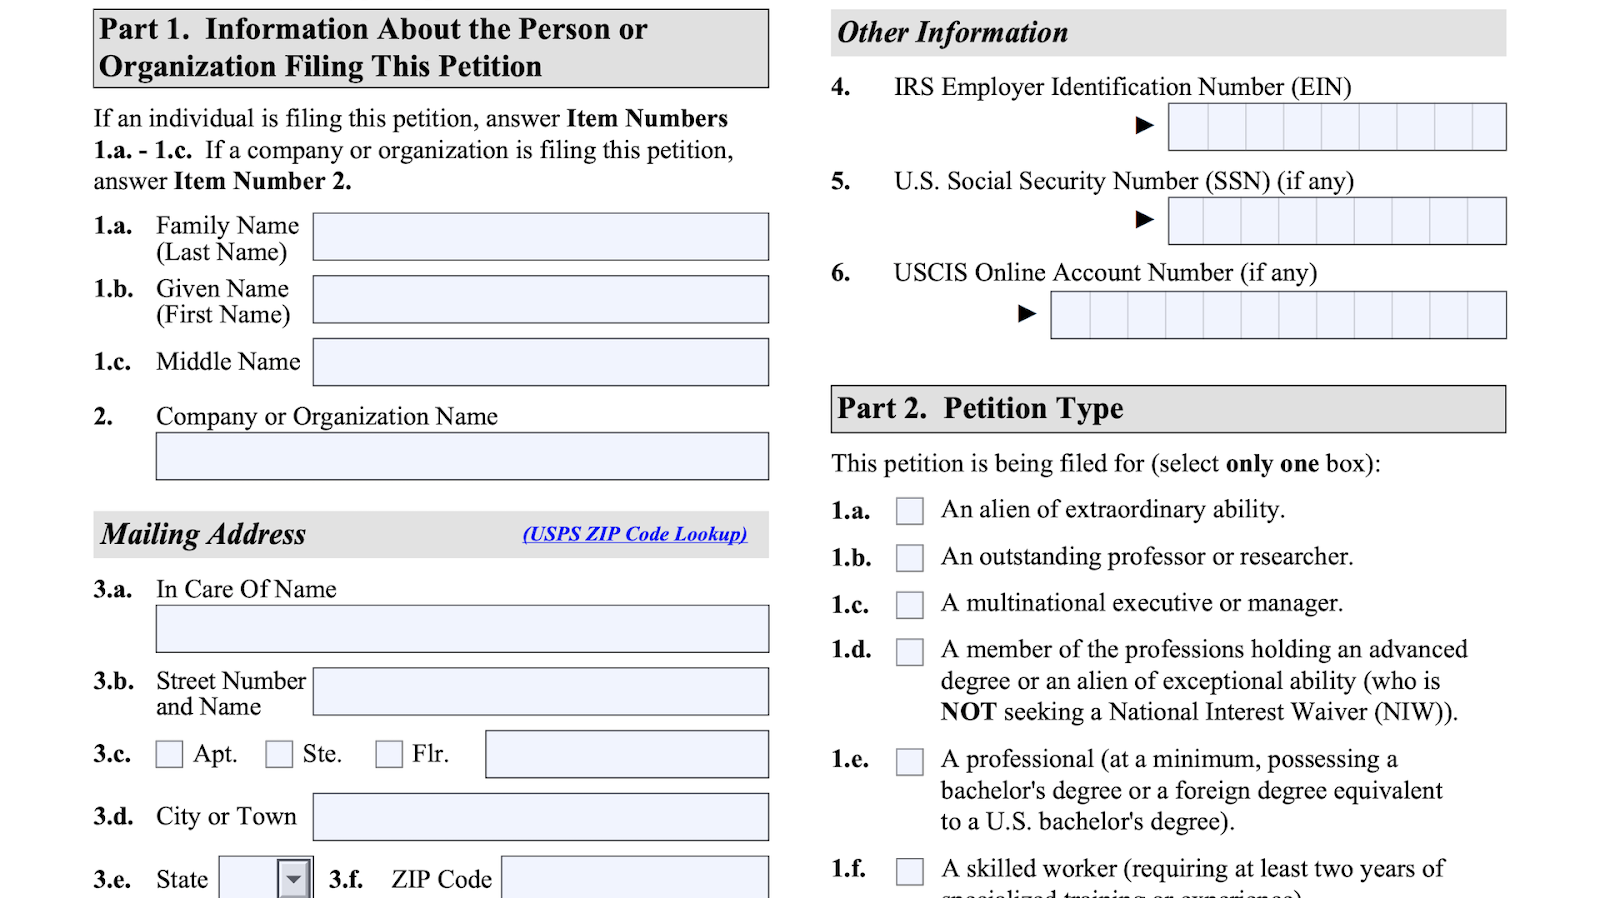 Screenshot from the form i-140 about the general information